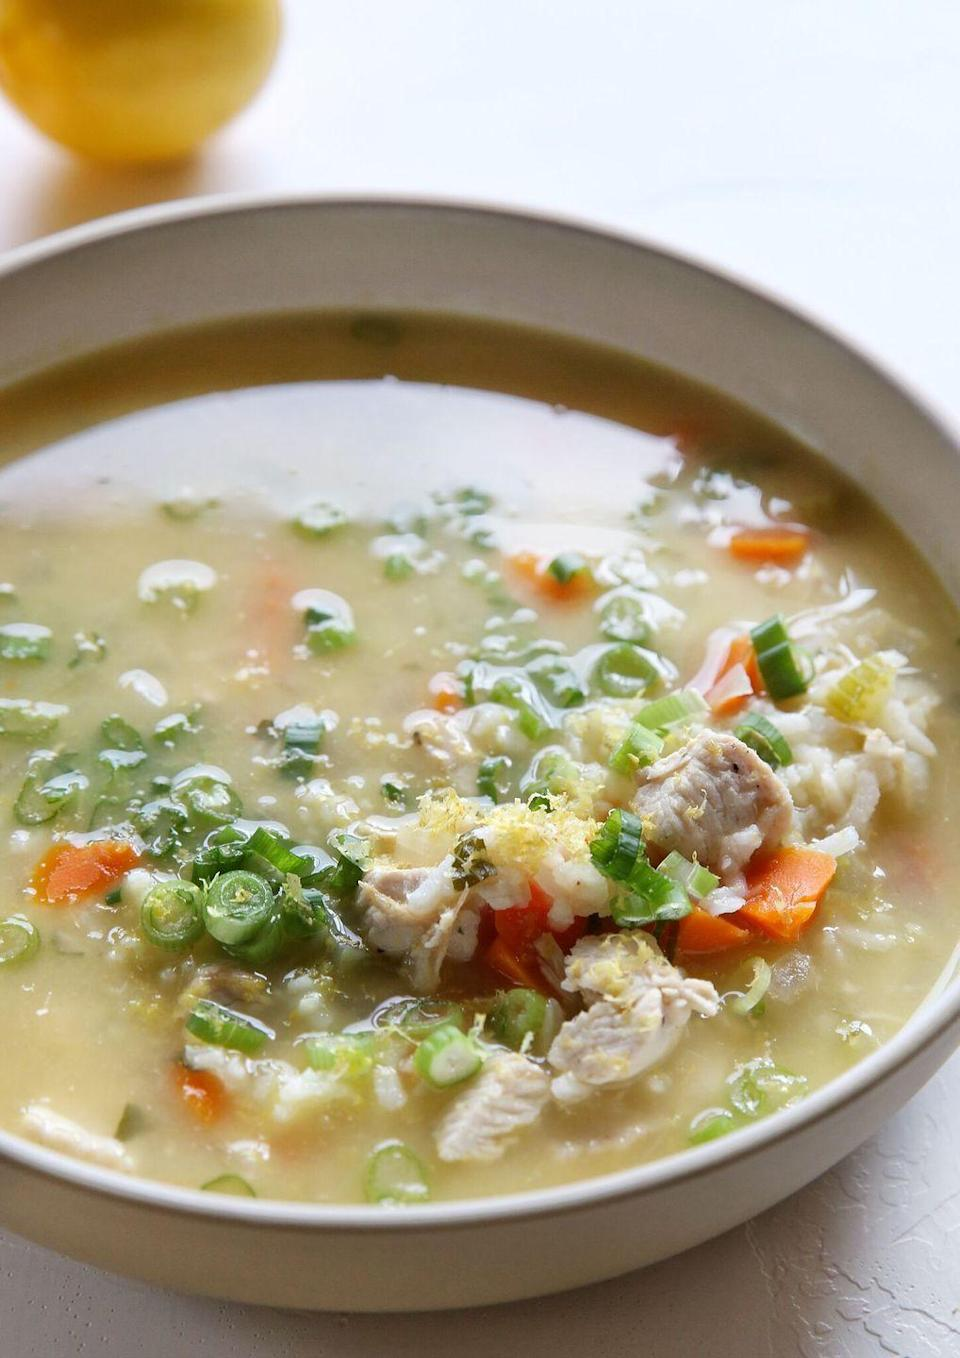 """<p>Spoiler: Chicken soup is way more comforting when it doesn't come out of a can.</p><p>Get the recipe from <a href=""""https://www.delish.com/cooking/recipe-ideas/recipes/a50412/lemon-chicken-rice-soup-recipe/"""" rel=""""nofollow noopener"""" target=""""_blank"""" data-ylk=""""slk:Delish"""" class=""""link rapid-noclick-resp"""">Delish</a>.</p>"""